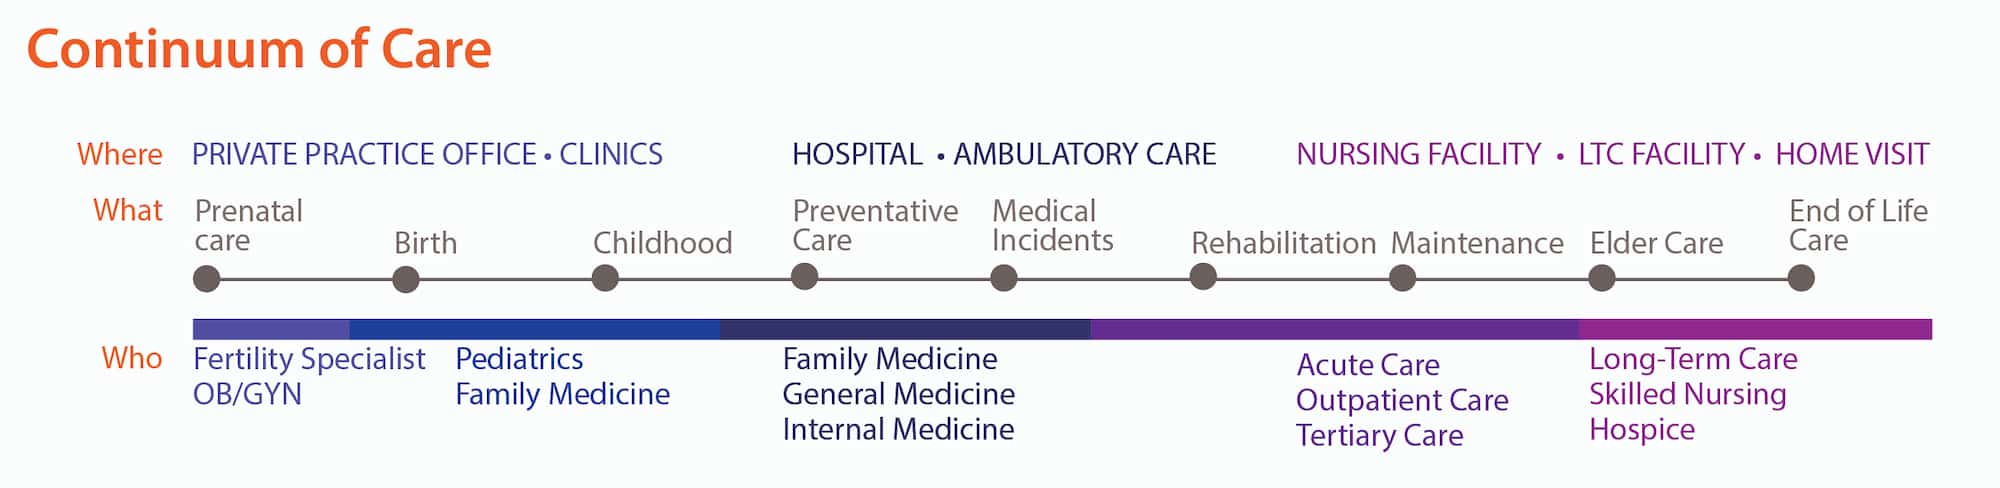 What is the Continuum of Care?